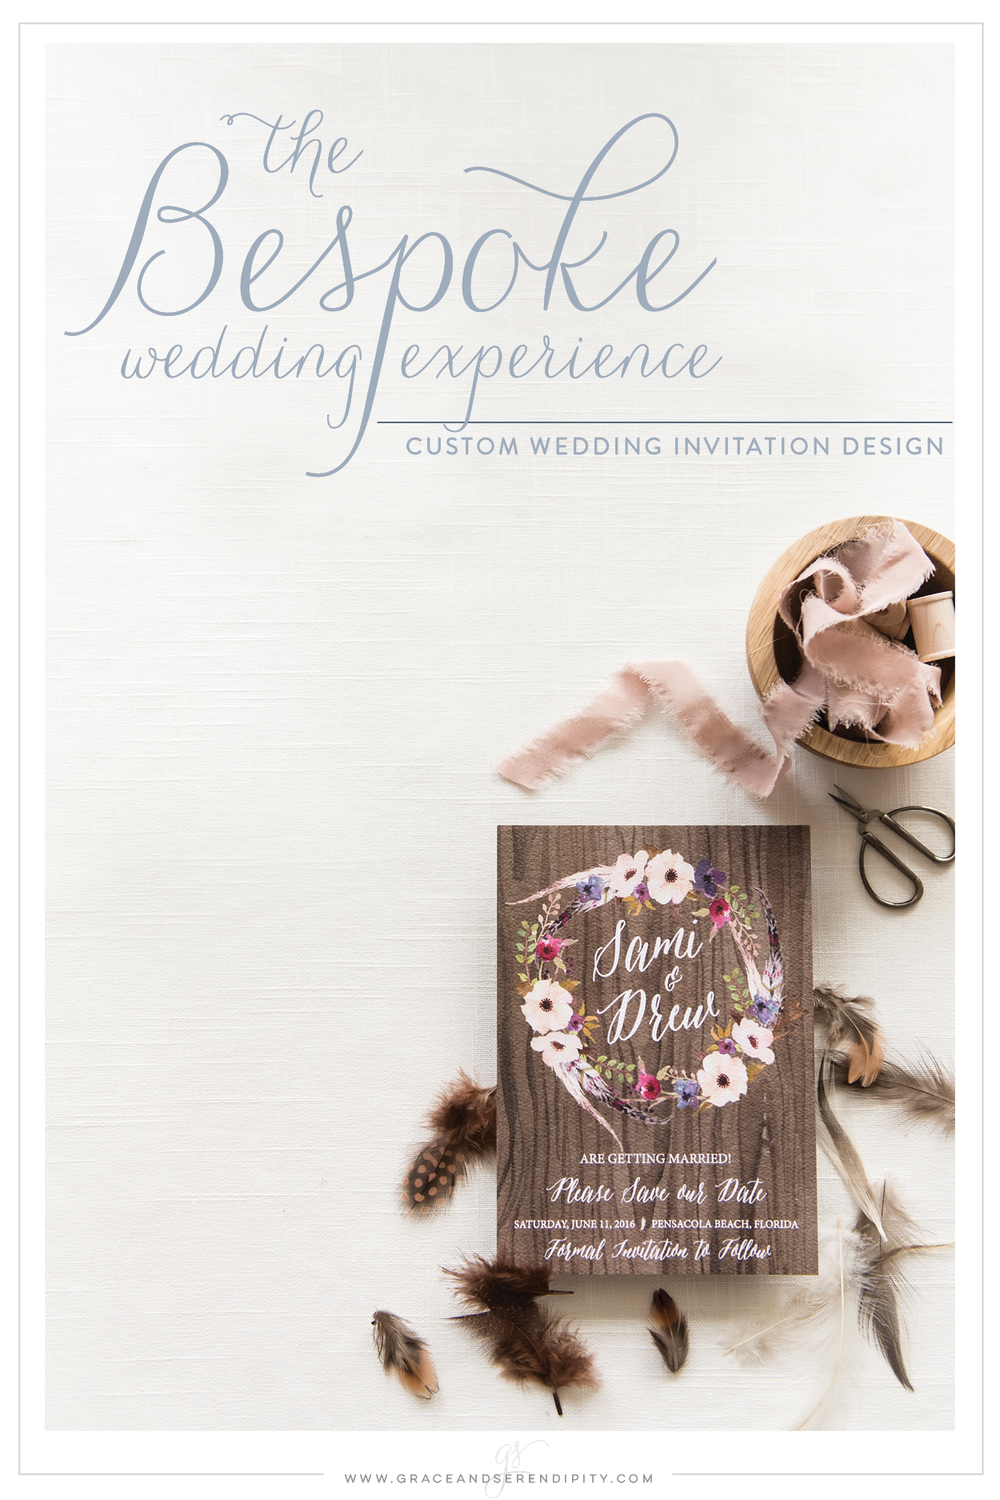 Bespoke Wedding Invitation Design by Pensacola Invitation Designer Grace and Serendipity